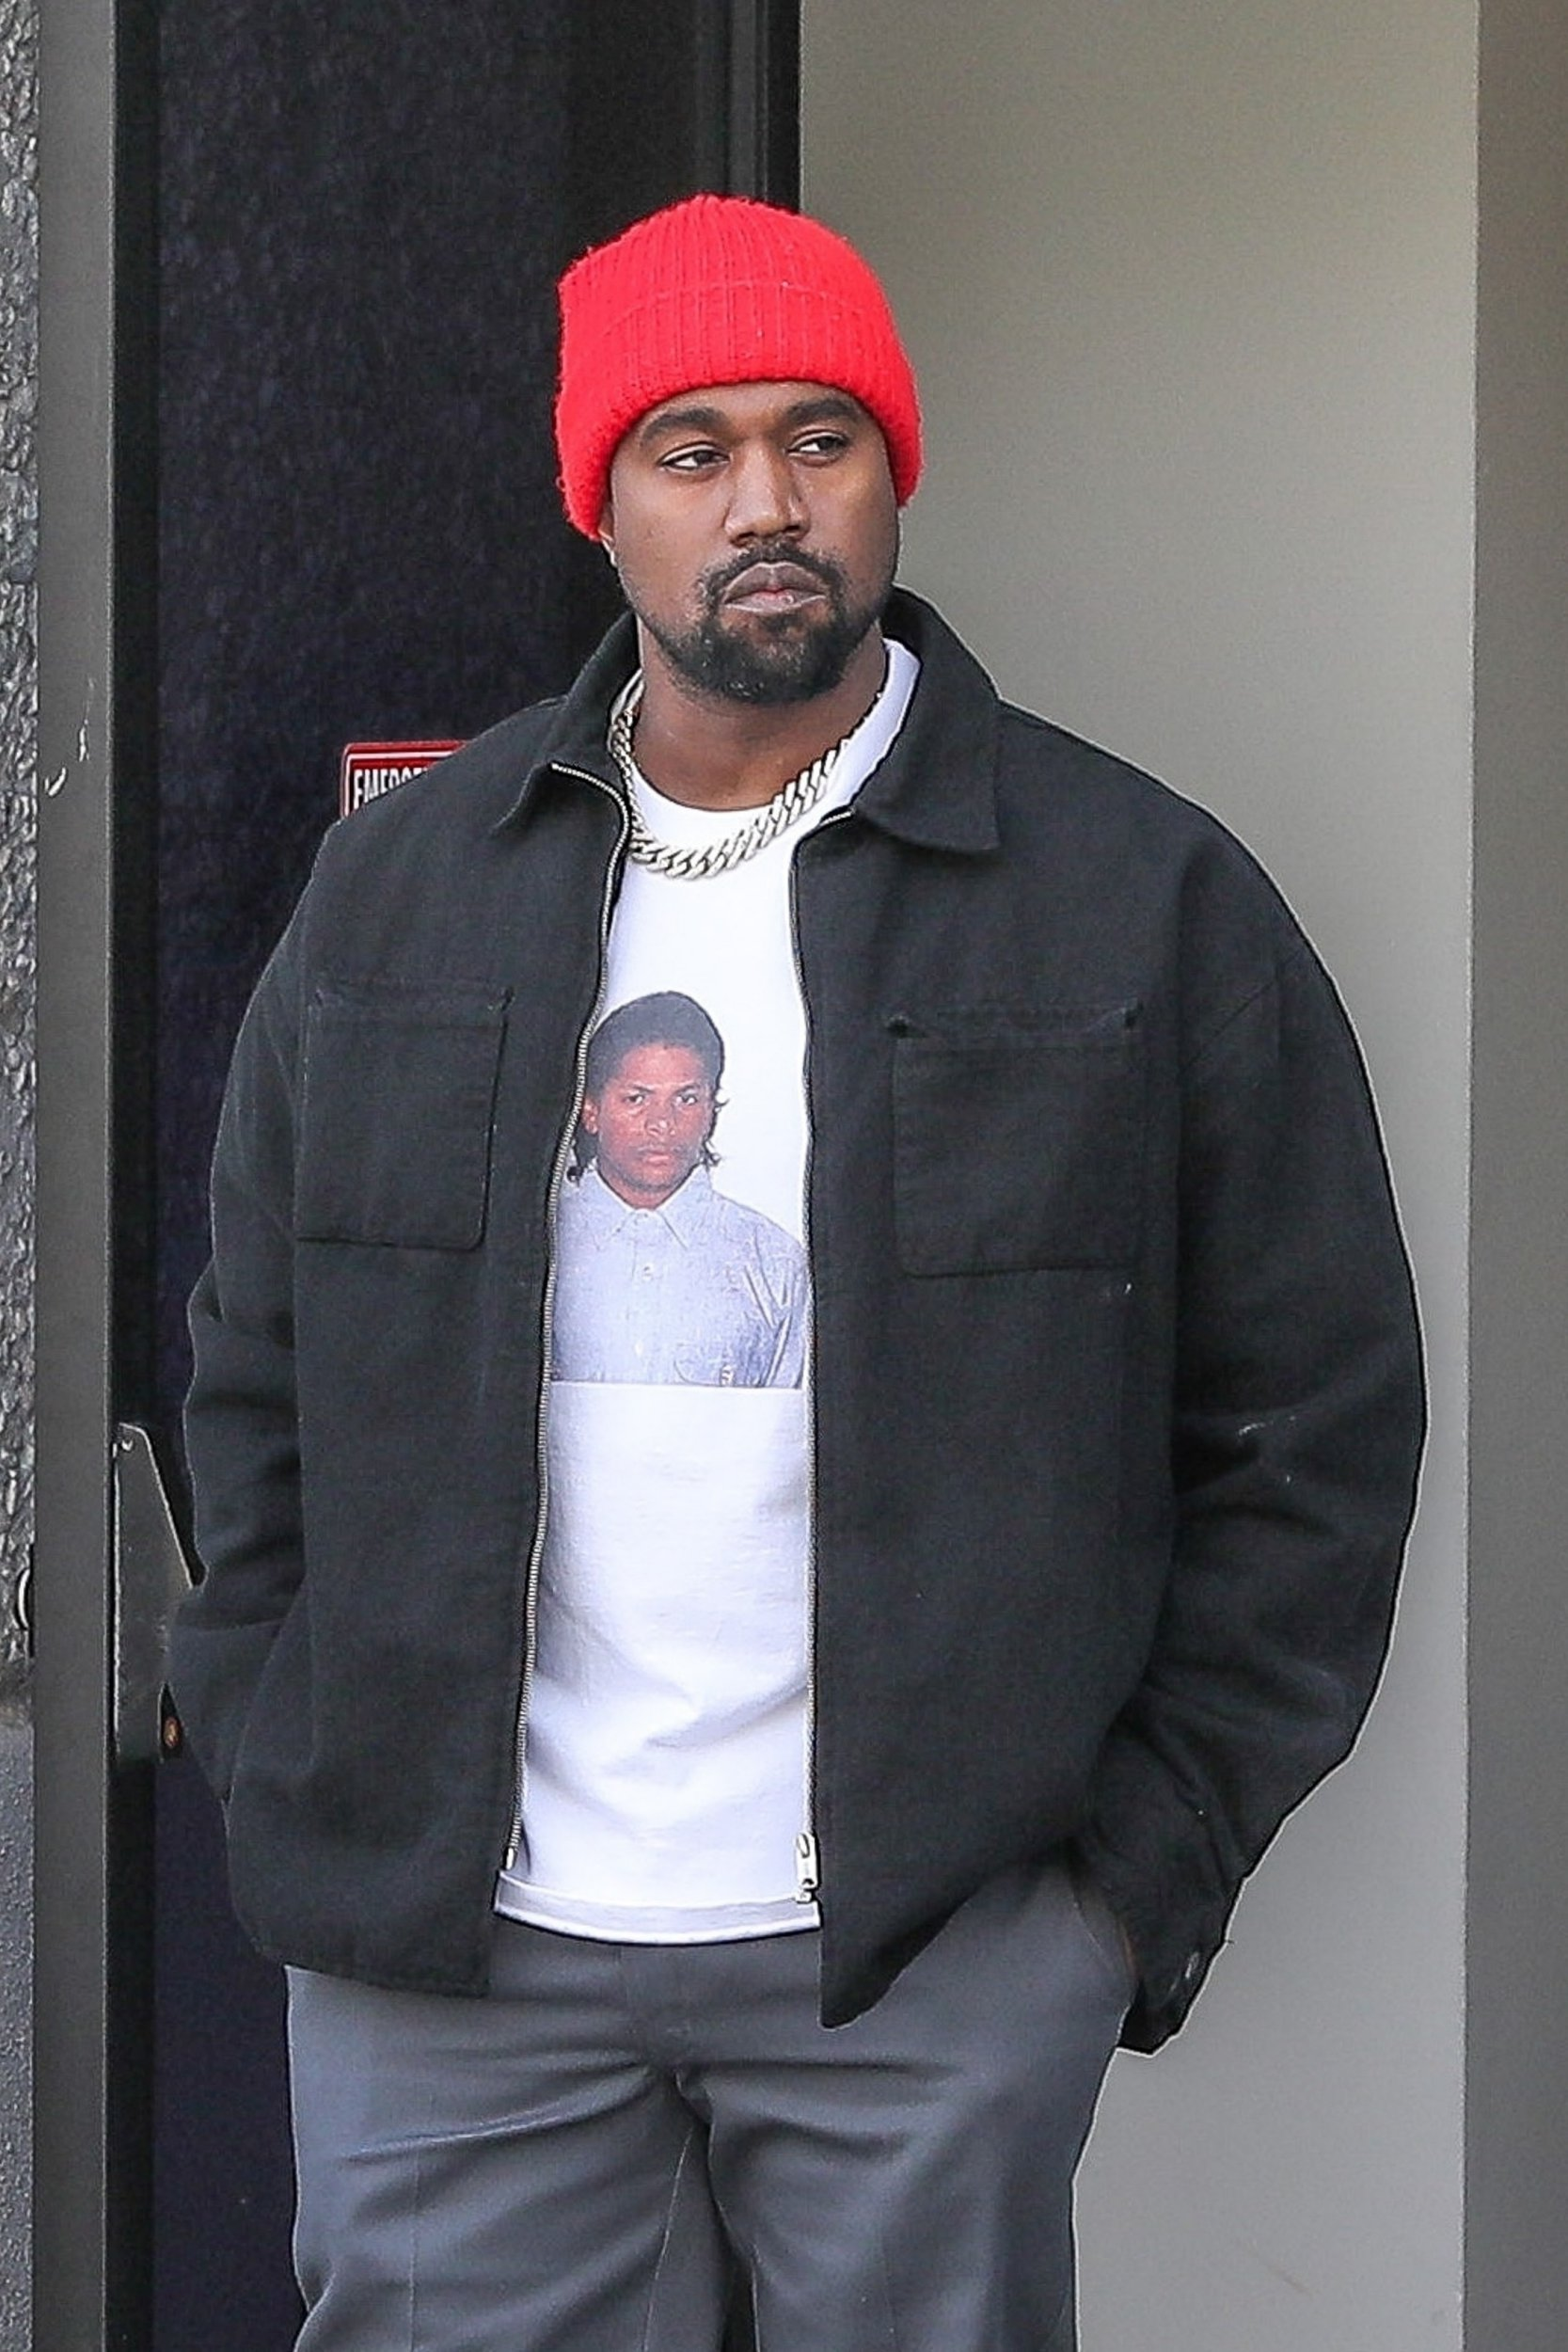 Kanye West looks absolutely thrilled to be working on the